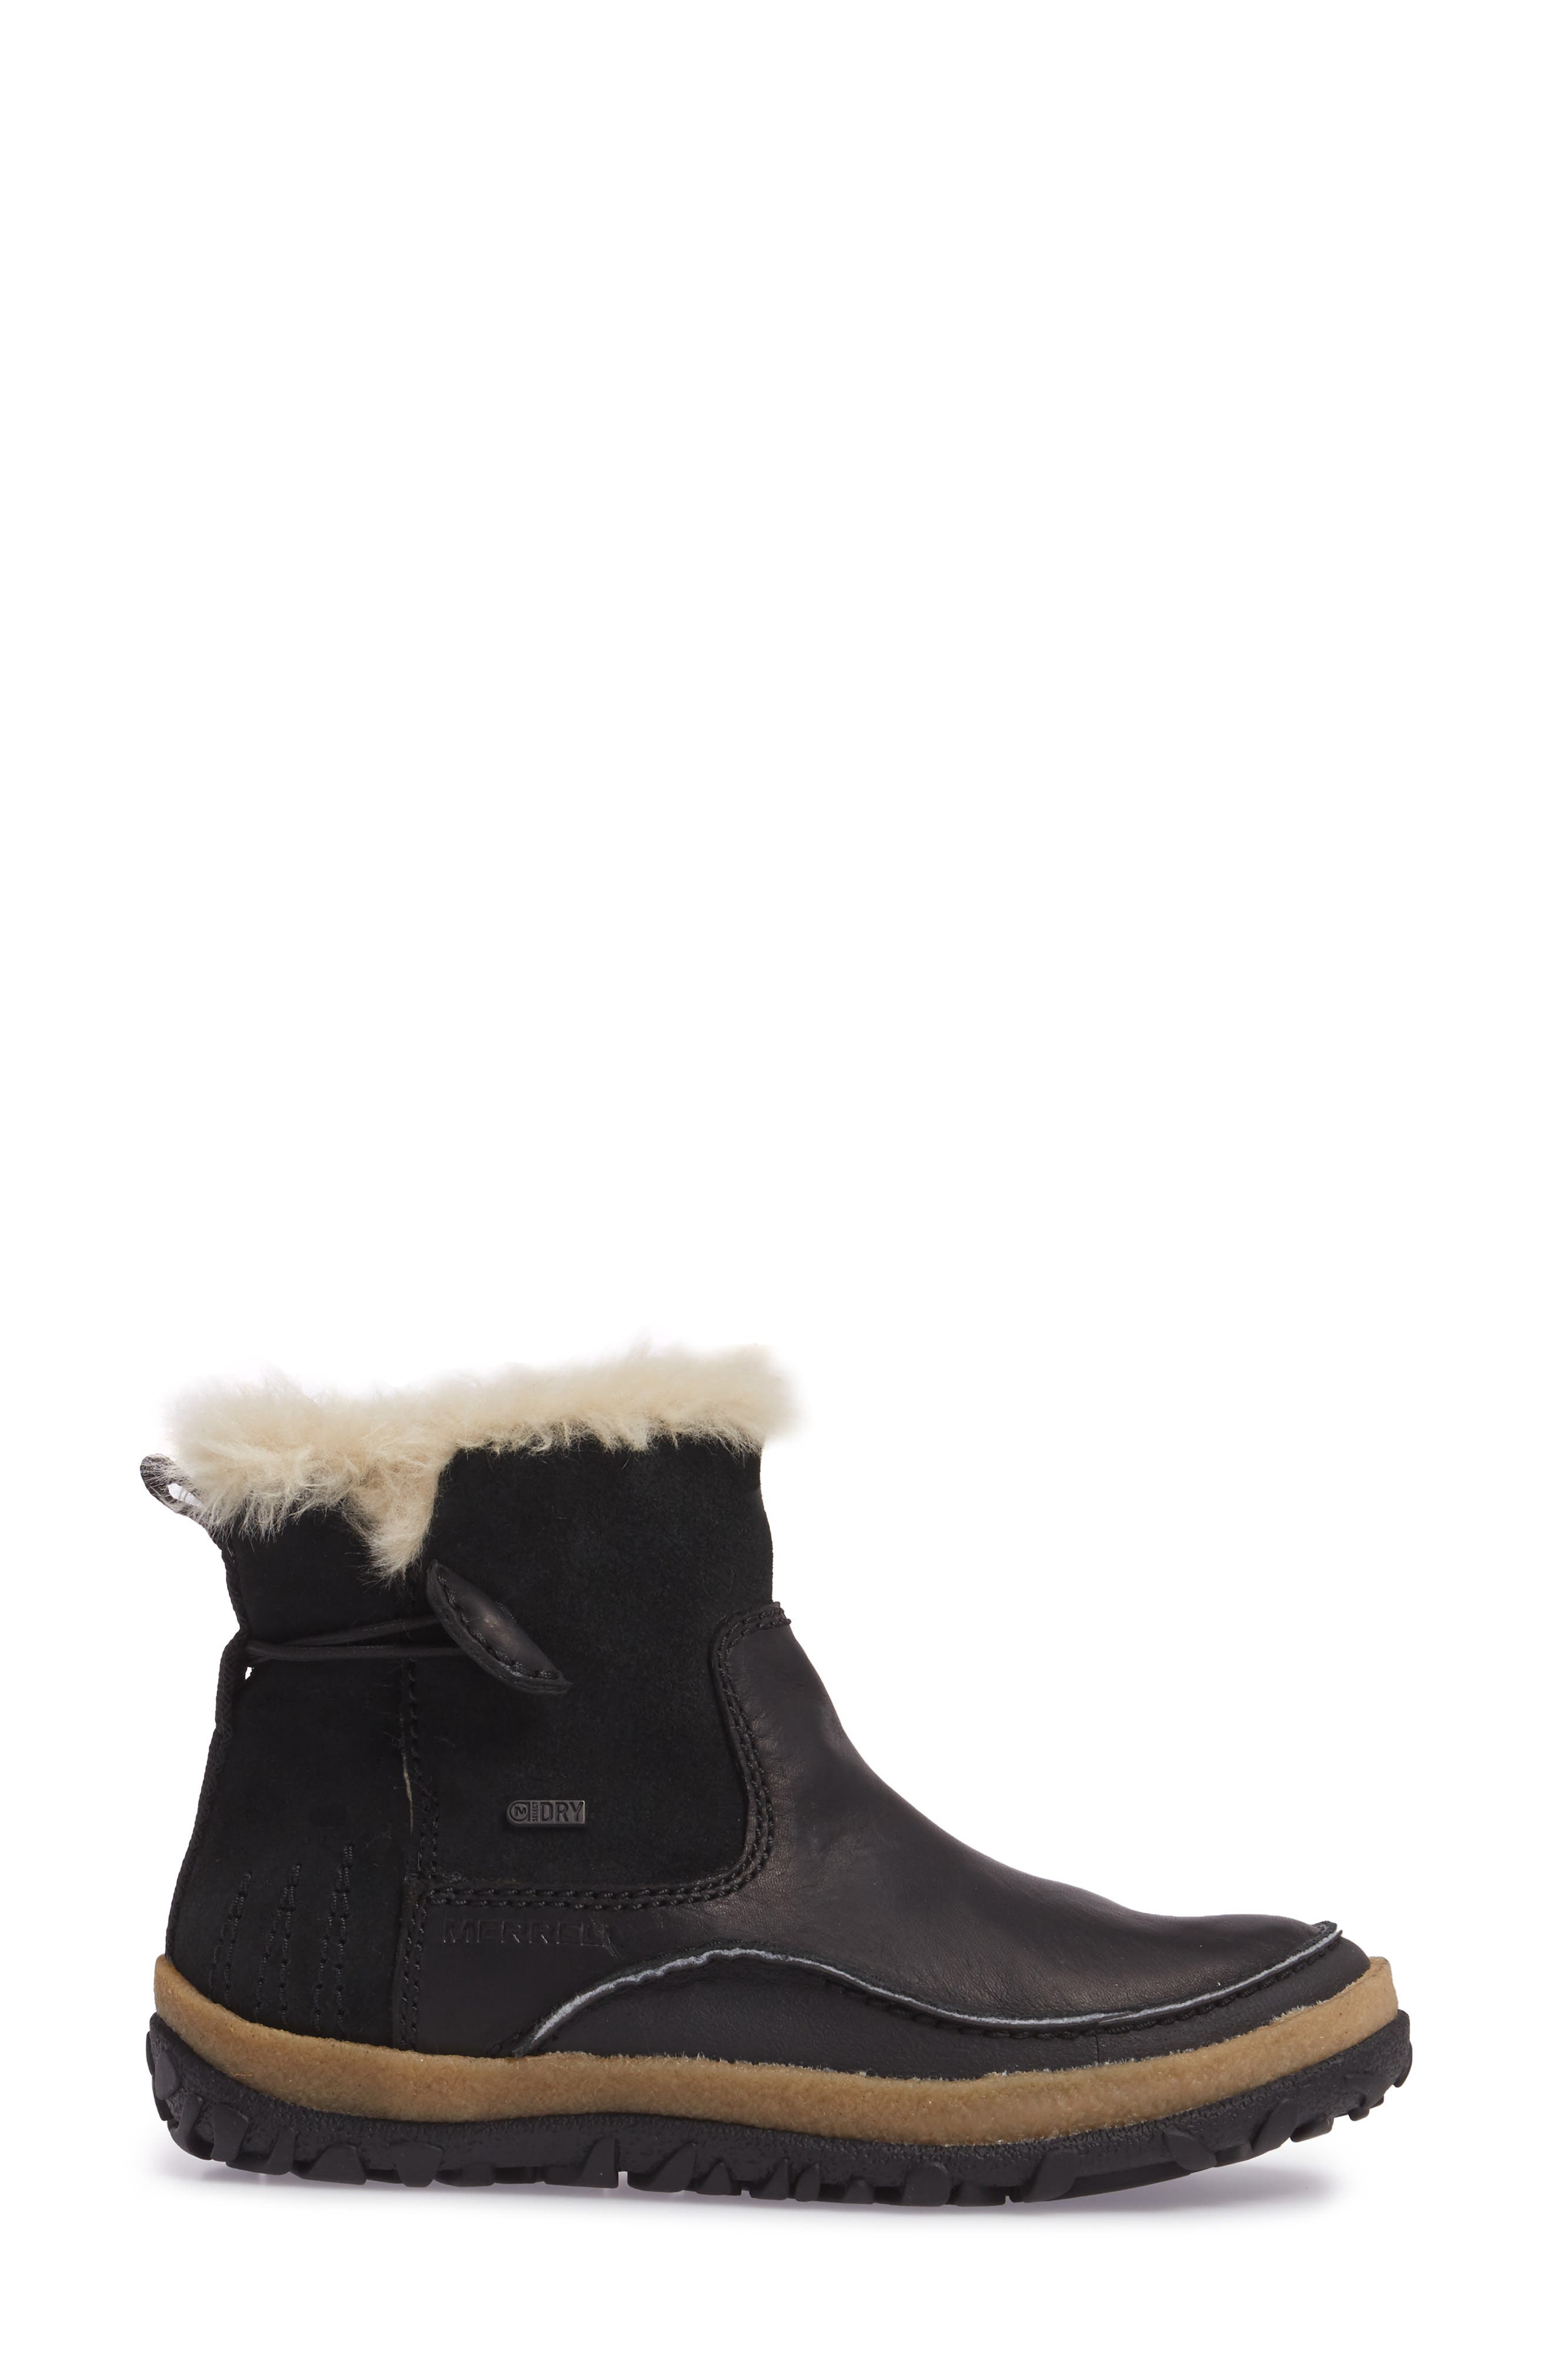 Tremblant Pull-On Polar Waterproof Bootie,                             Alternate thumbnail 3, color,                             001